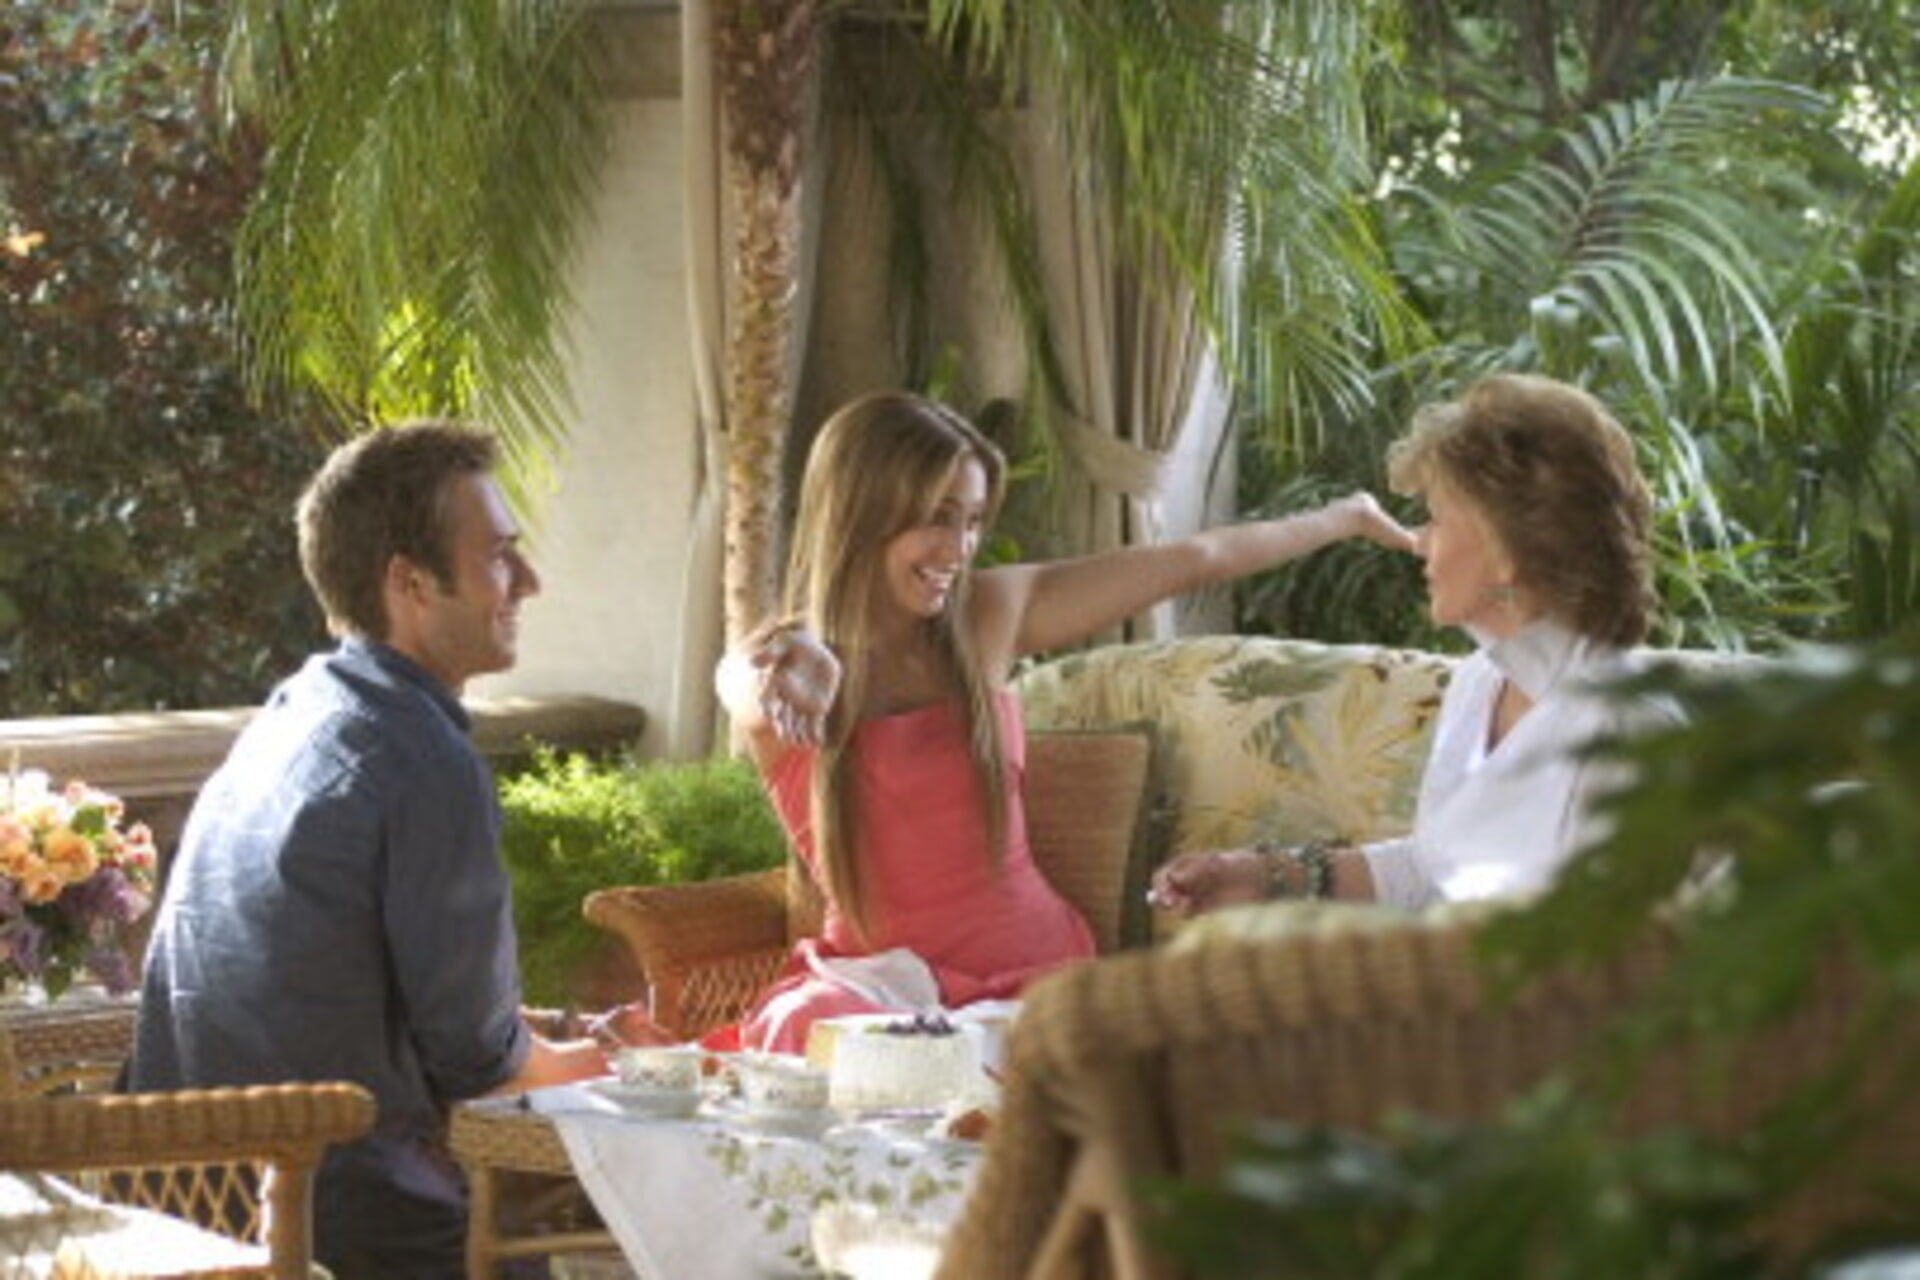 Monster-in-law - Image 7